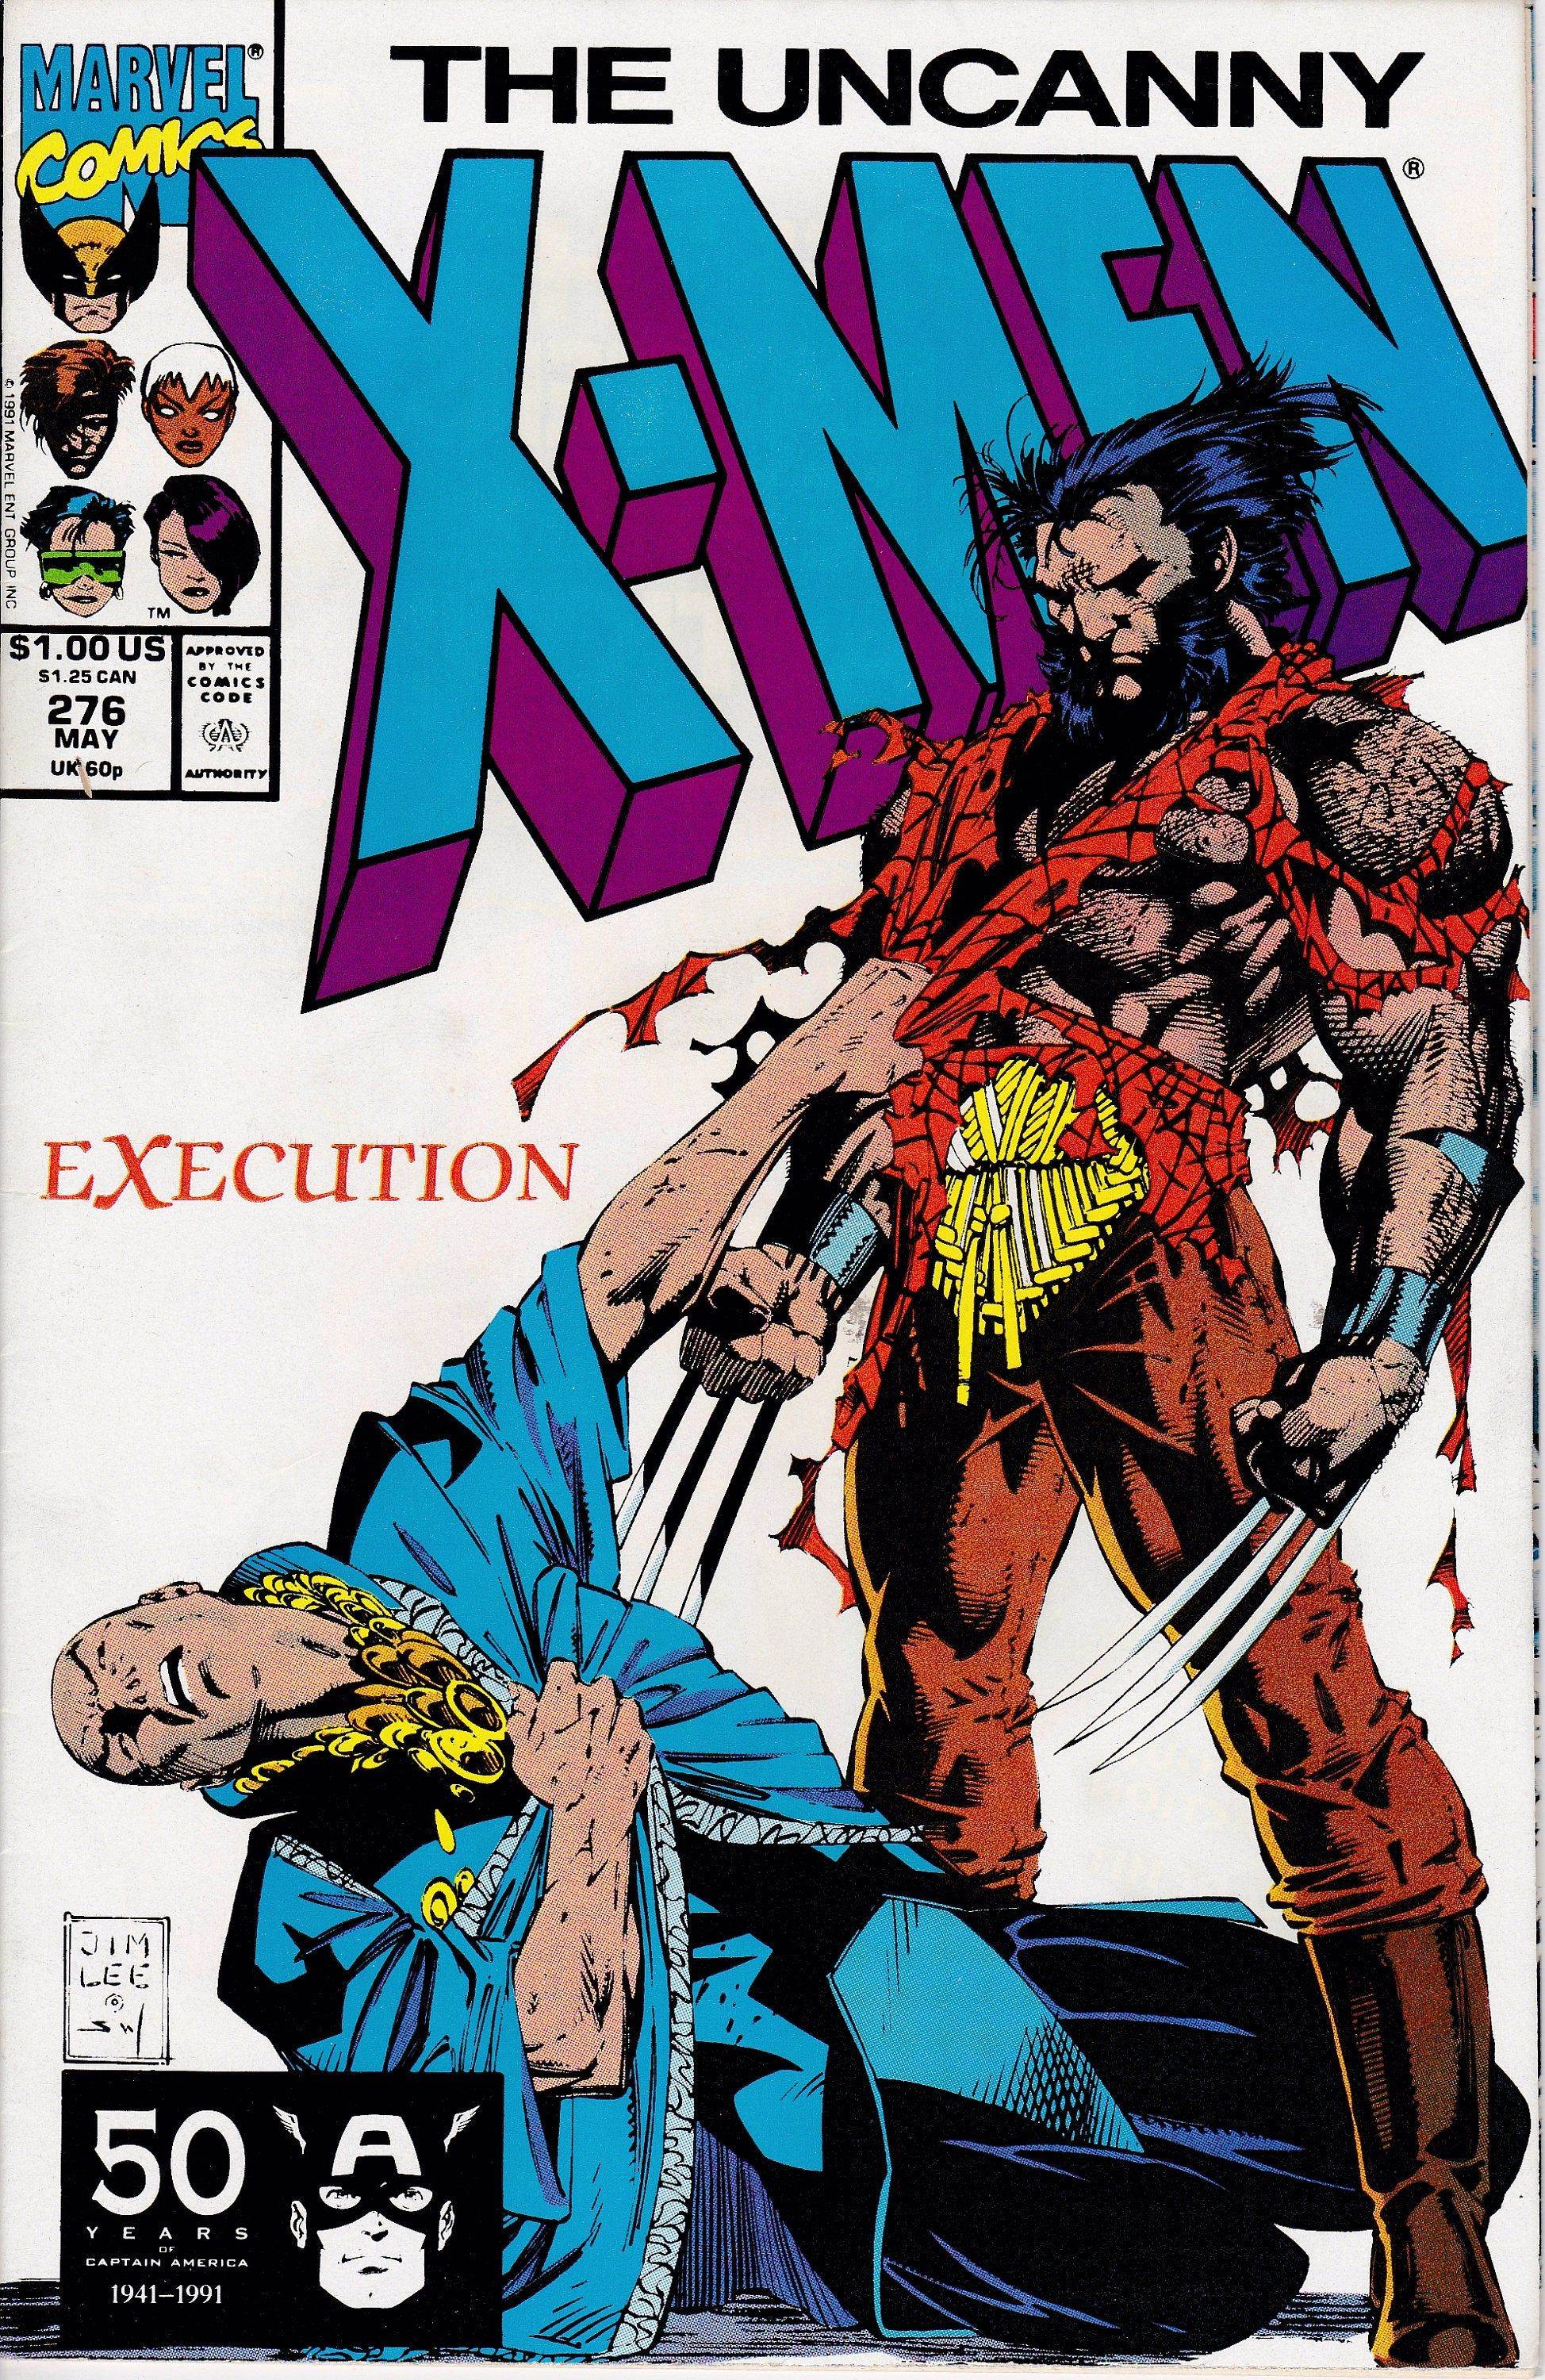 Uncanny X Men 276 1963 1st Series April 1991 Marvel Etsy In 2020 Marvel Comics Covers Comic Books Art Comics